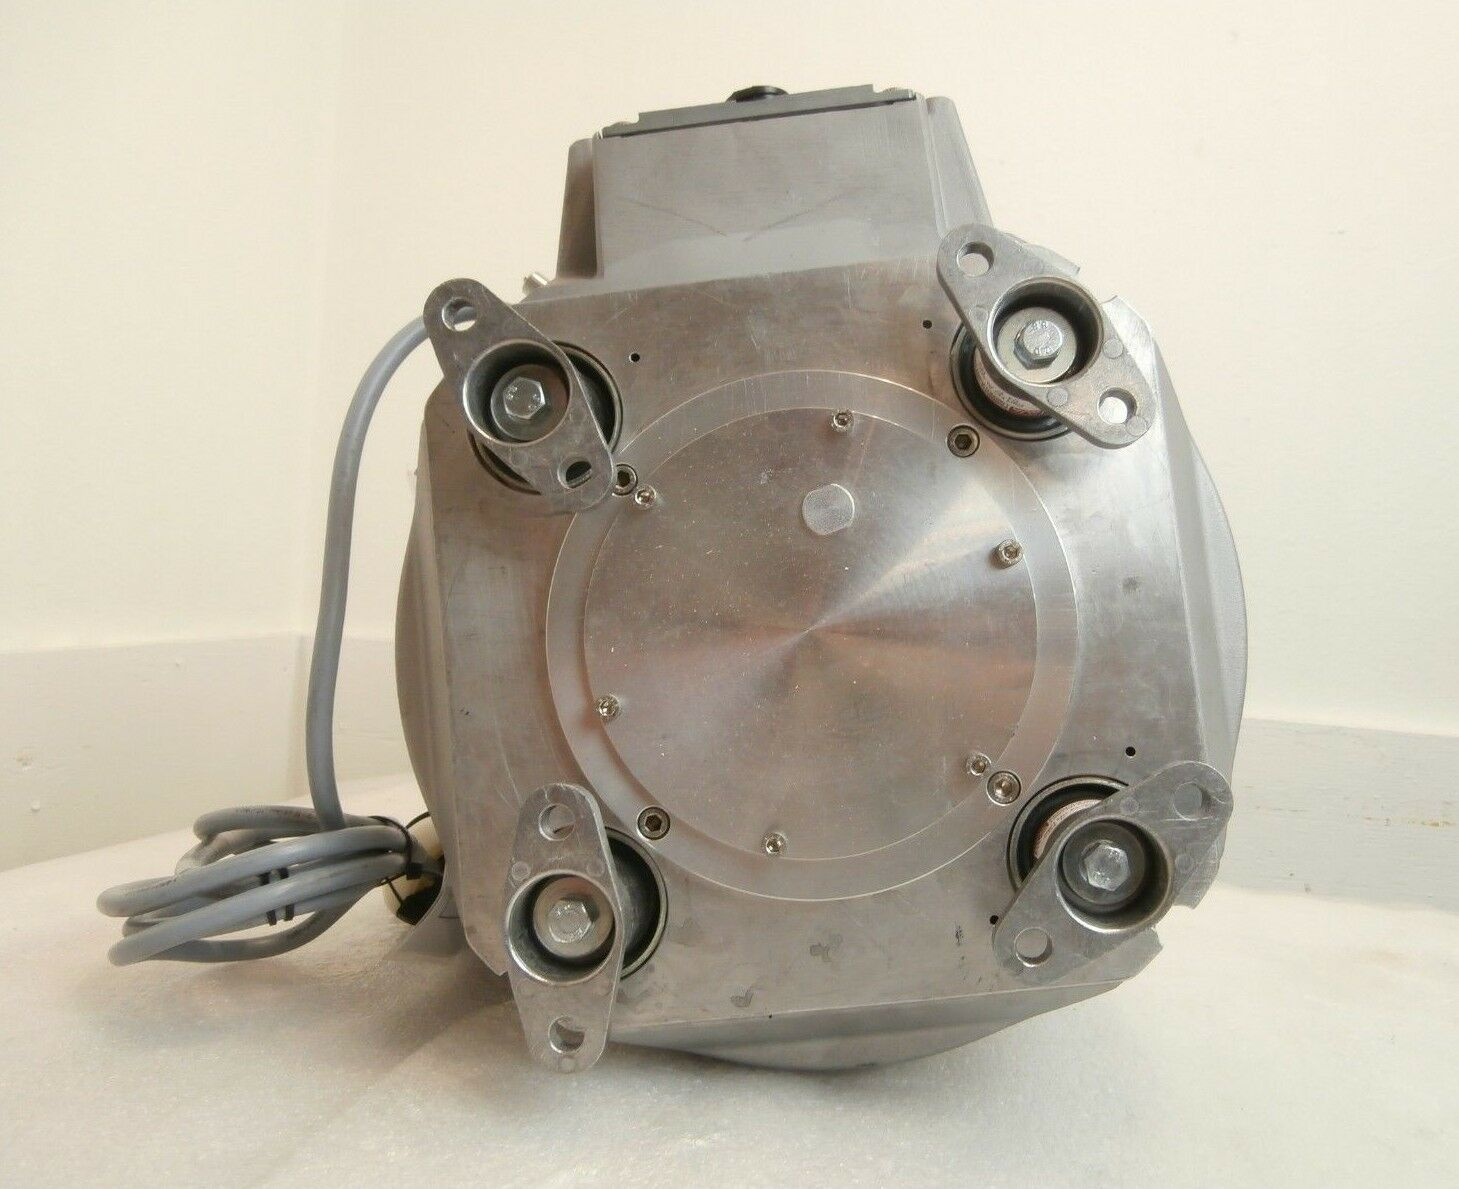 EPX TWIN 180L Edwards A419-61-222 High Vacuum Dry Pump Used Tested Working